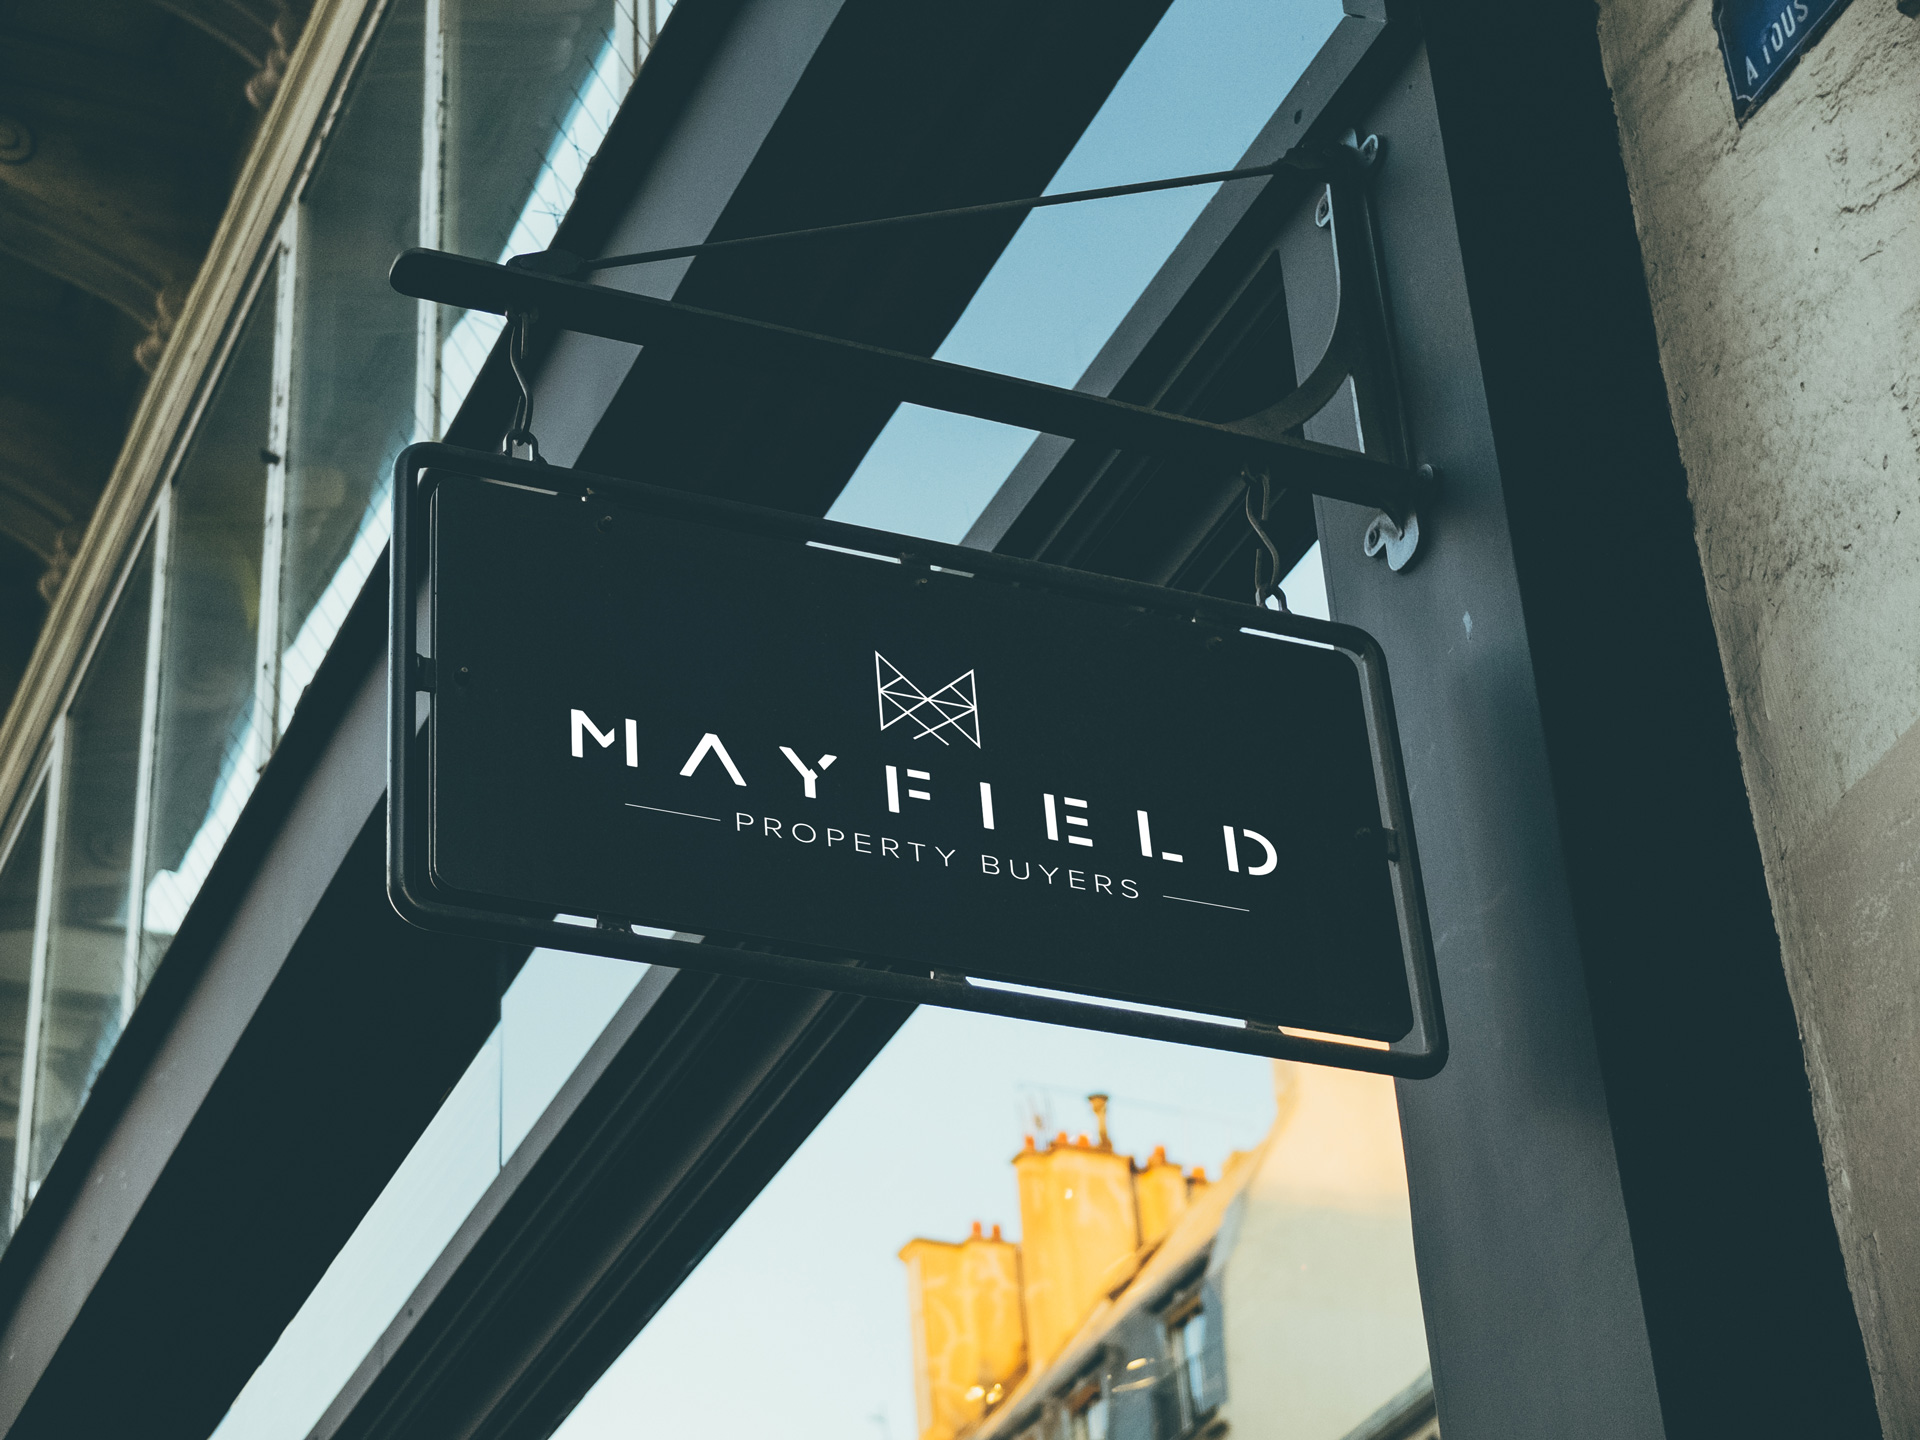 Mayfield Property Buyers outdoor wayfinding signage